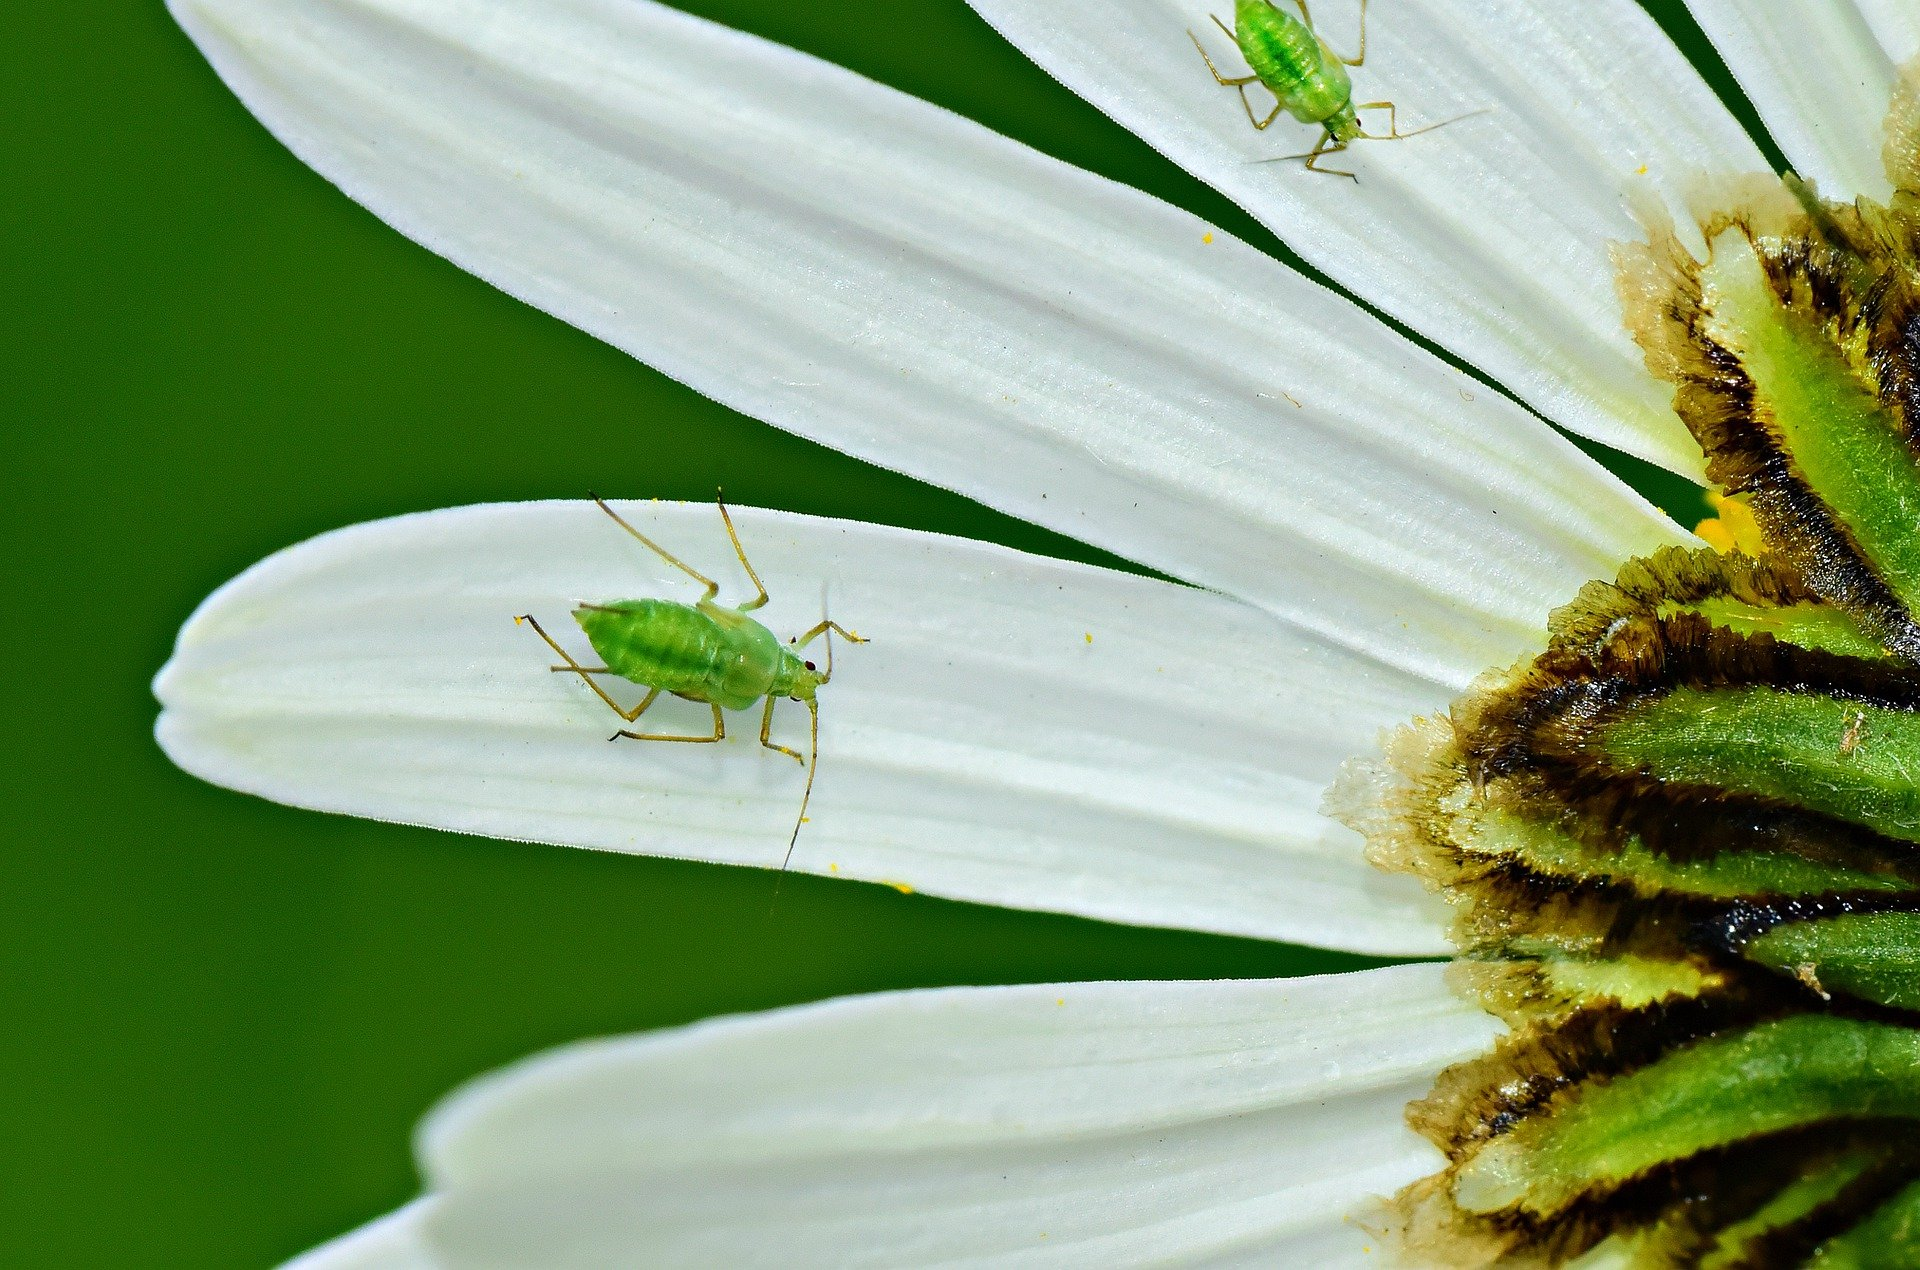 aphid-4243855_1920